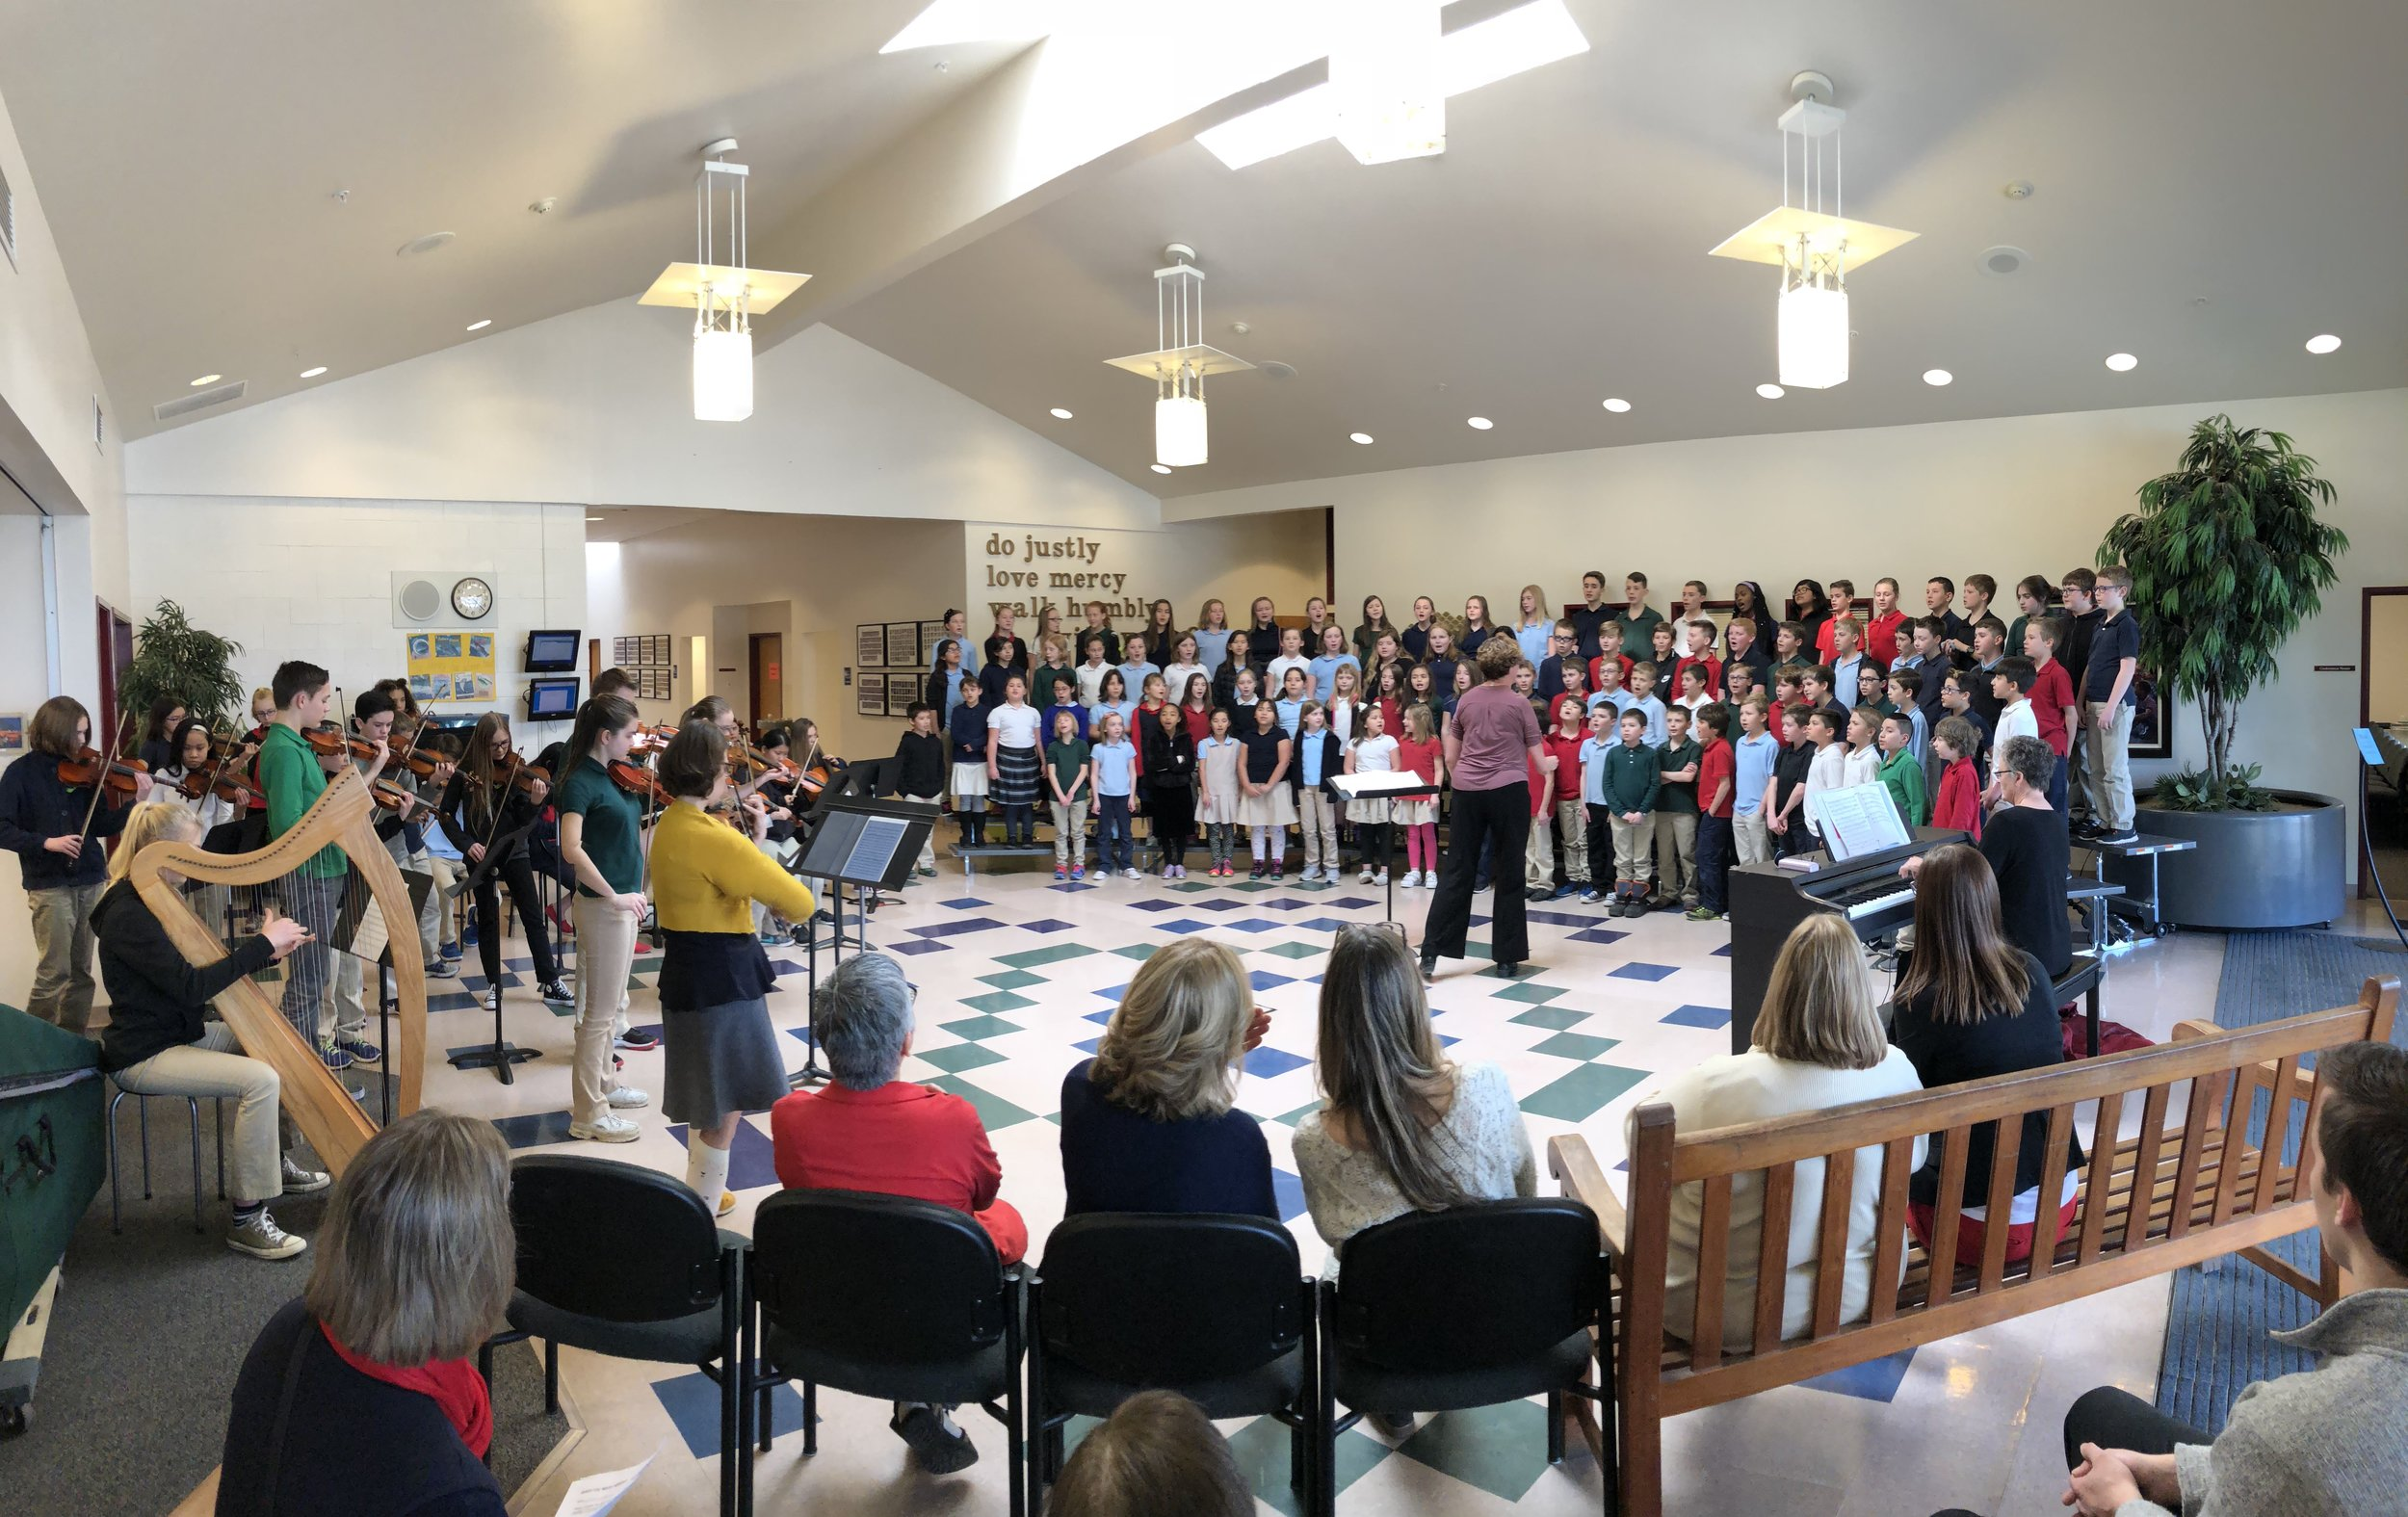 patti short directing rogers adventist school treble choir and con brio in rogers' lobby this week.